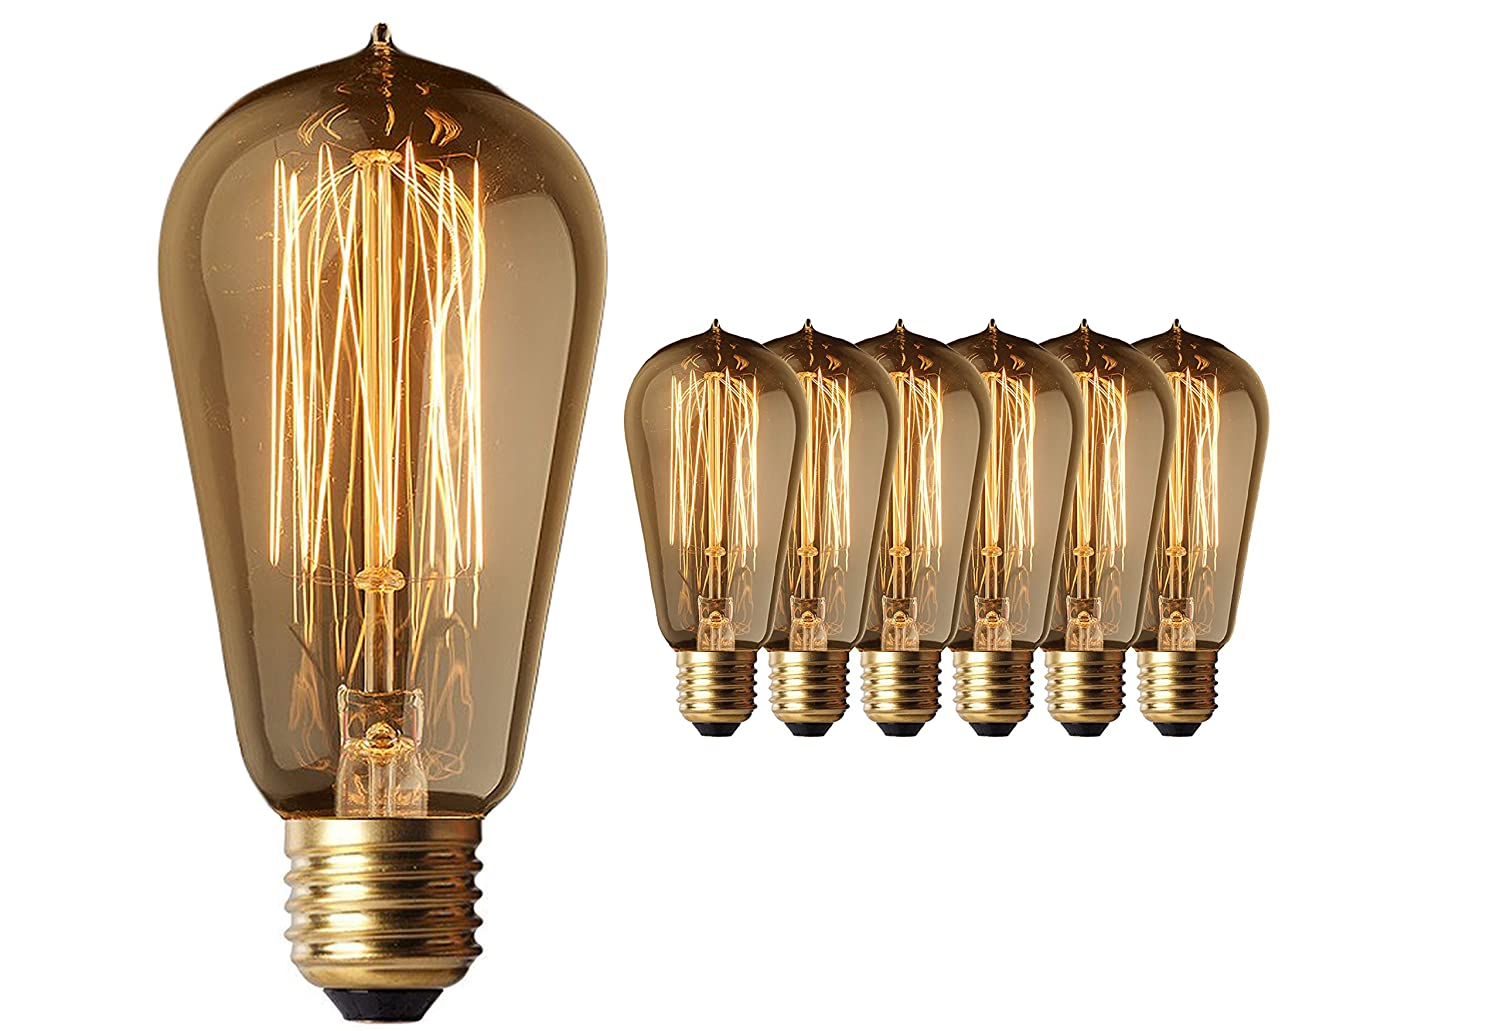 6 Pack - Old Fashion Edison Light Bulbs - Highly Rated - 60W Vintage Squirrel Cage Filament - 120 Volts - 230 Lumens - ST58 Teardrop - Dimmable Antique Amber Lighting - Warranty Included